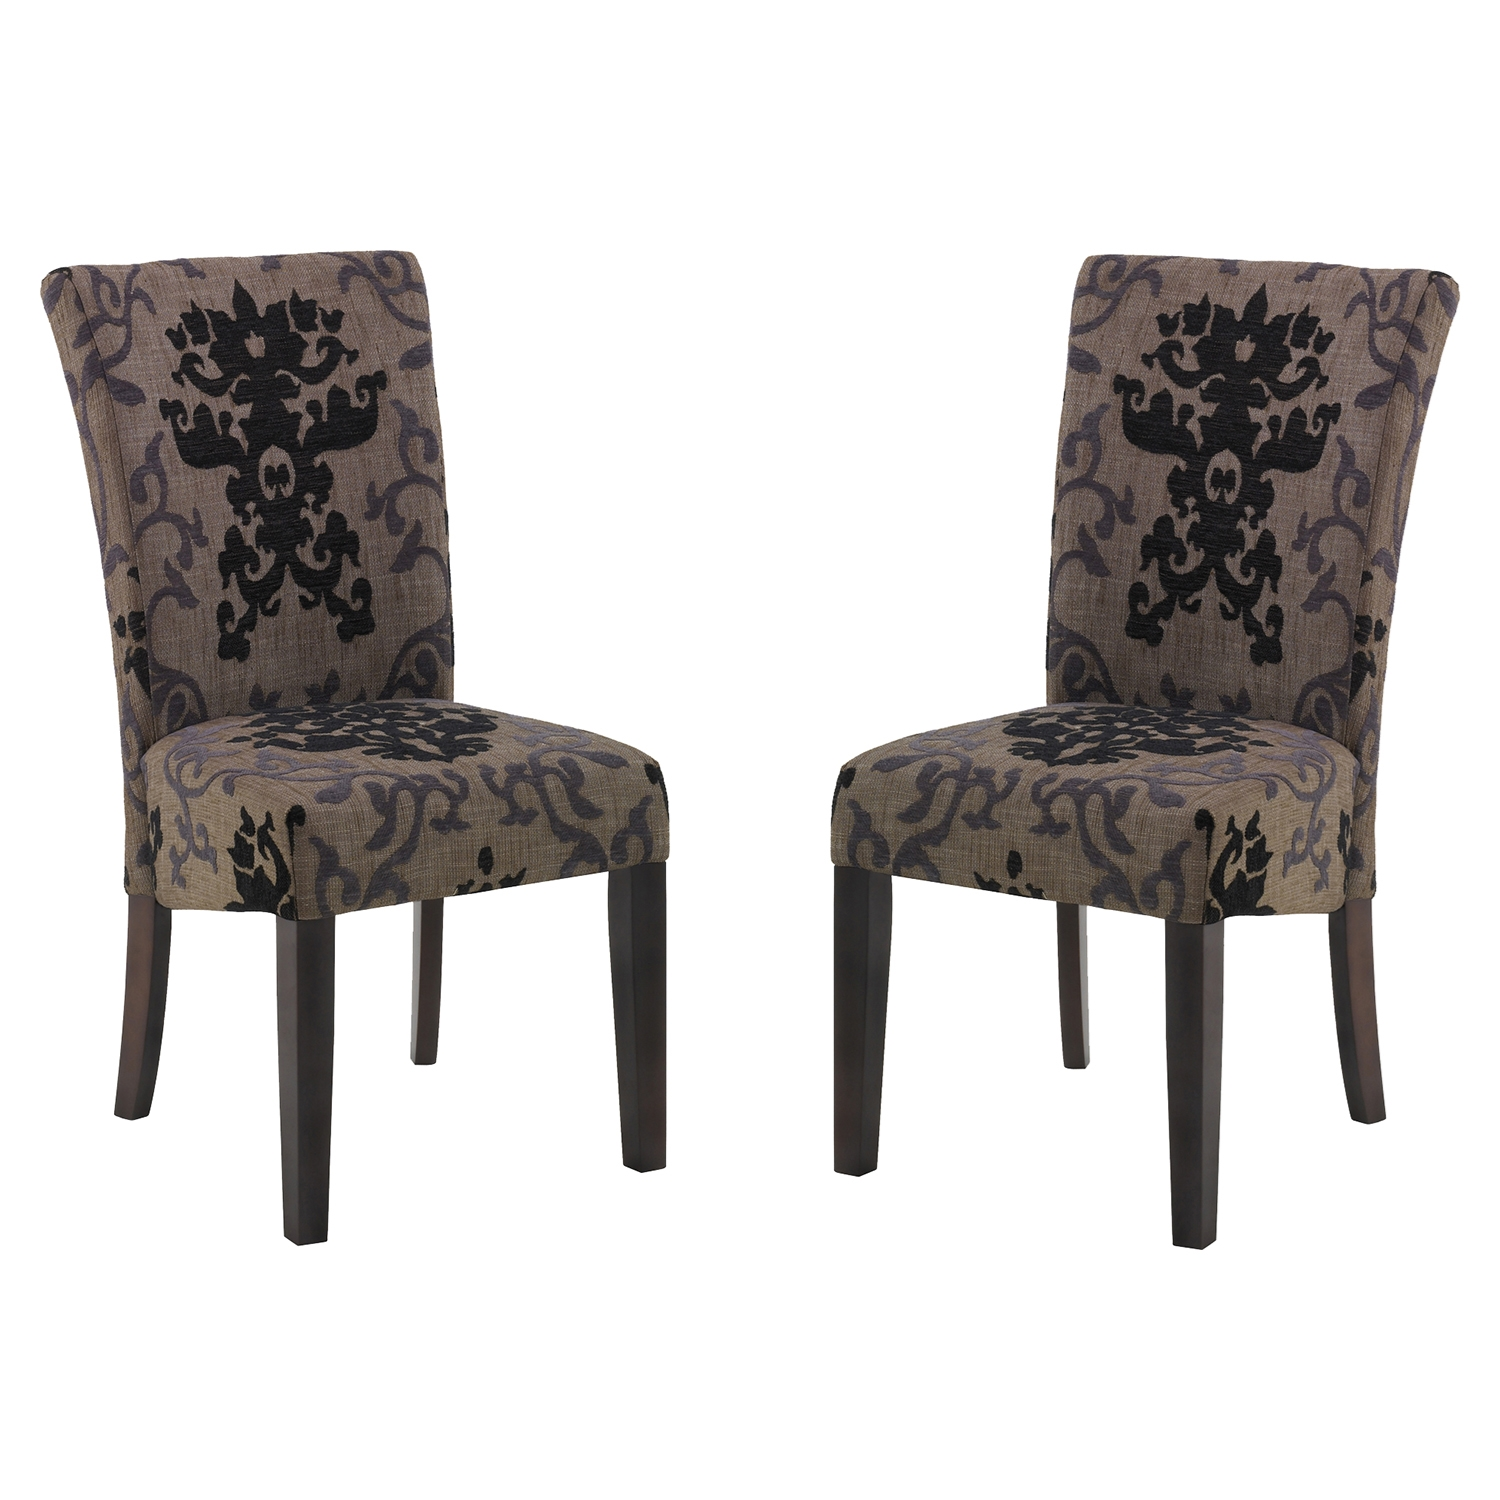 Montecito Side Chair - Toffee (Set of 2)